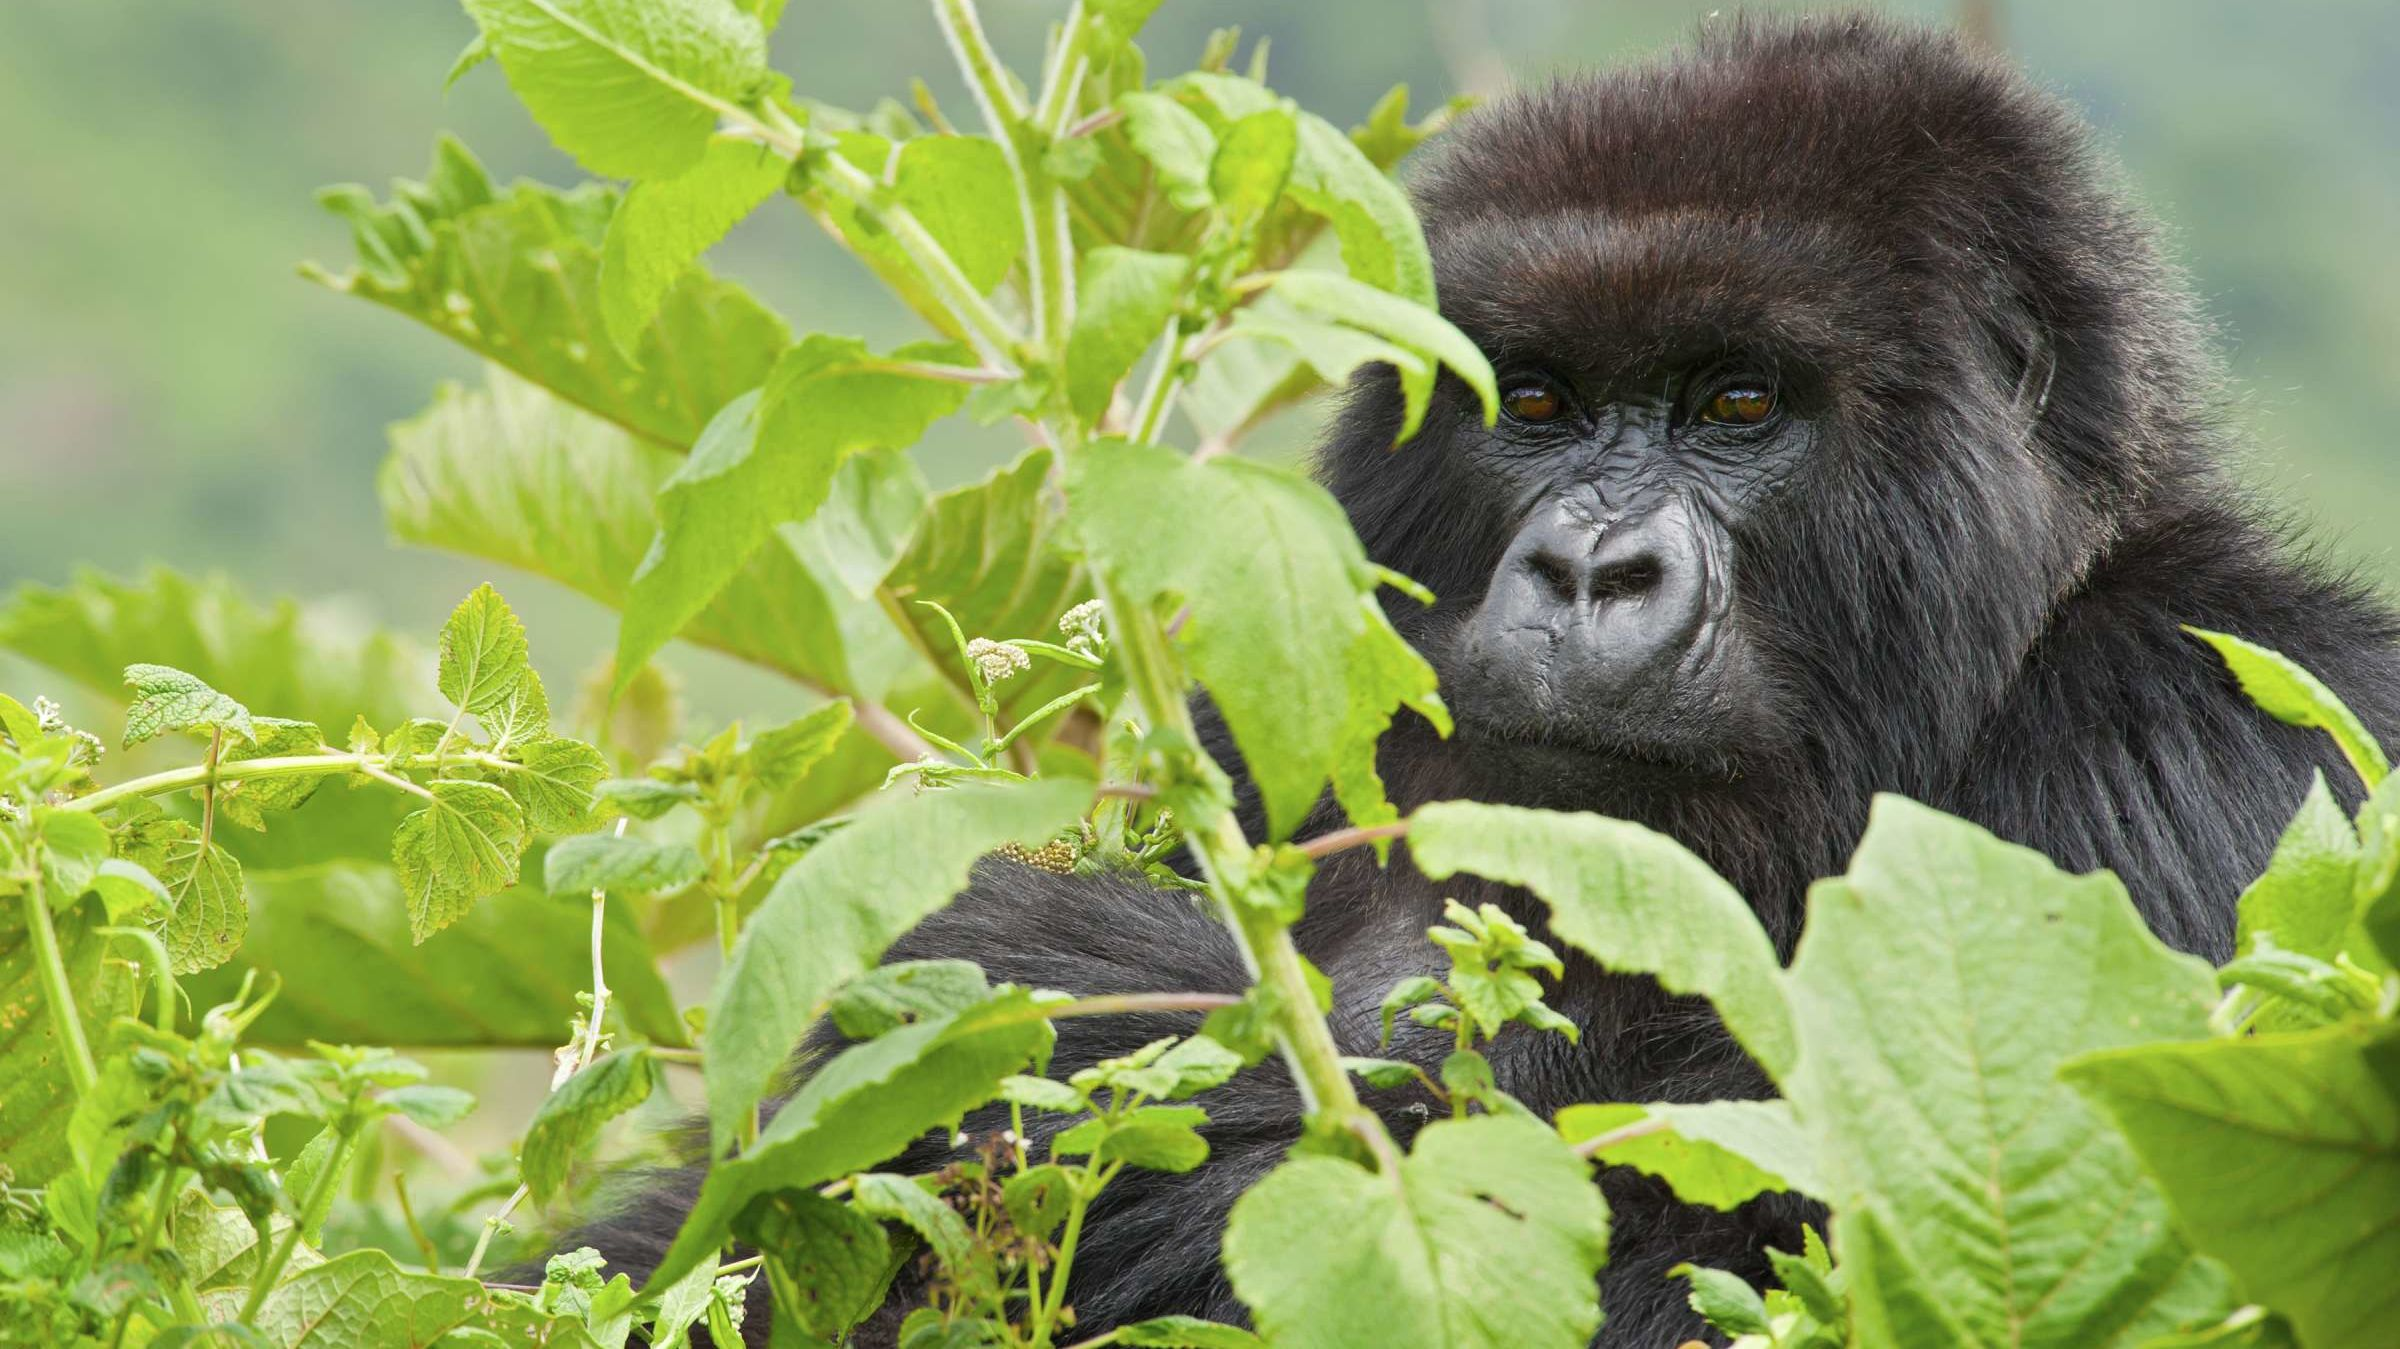 Win a Weeklong Safari to Track Gorillas With Experts in Uganda While Helping to Preserve Wilderness